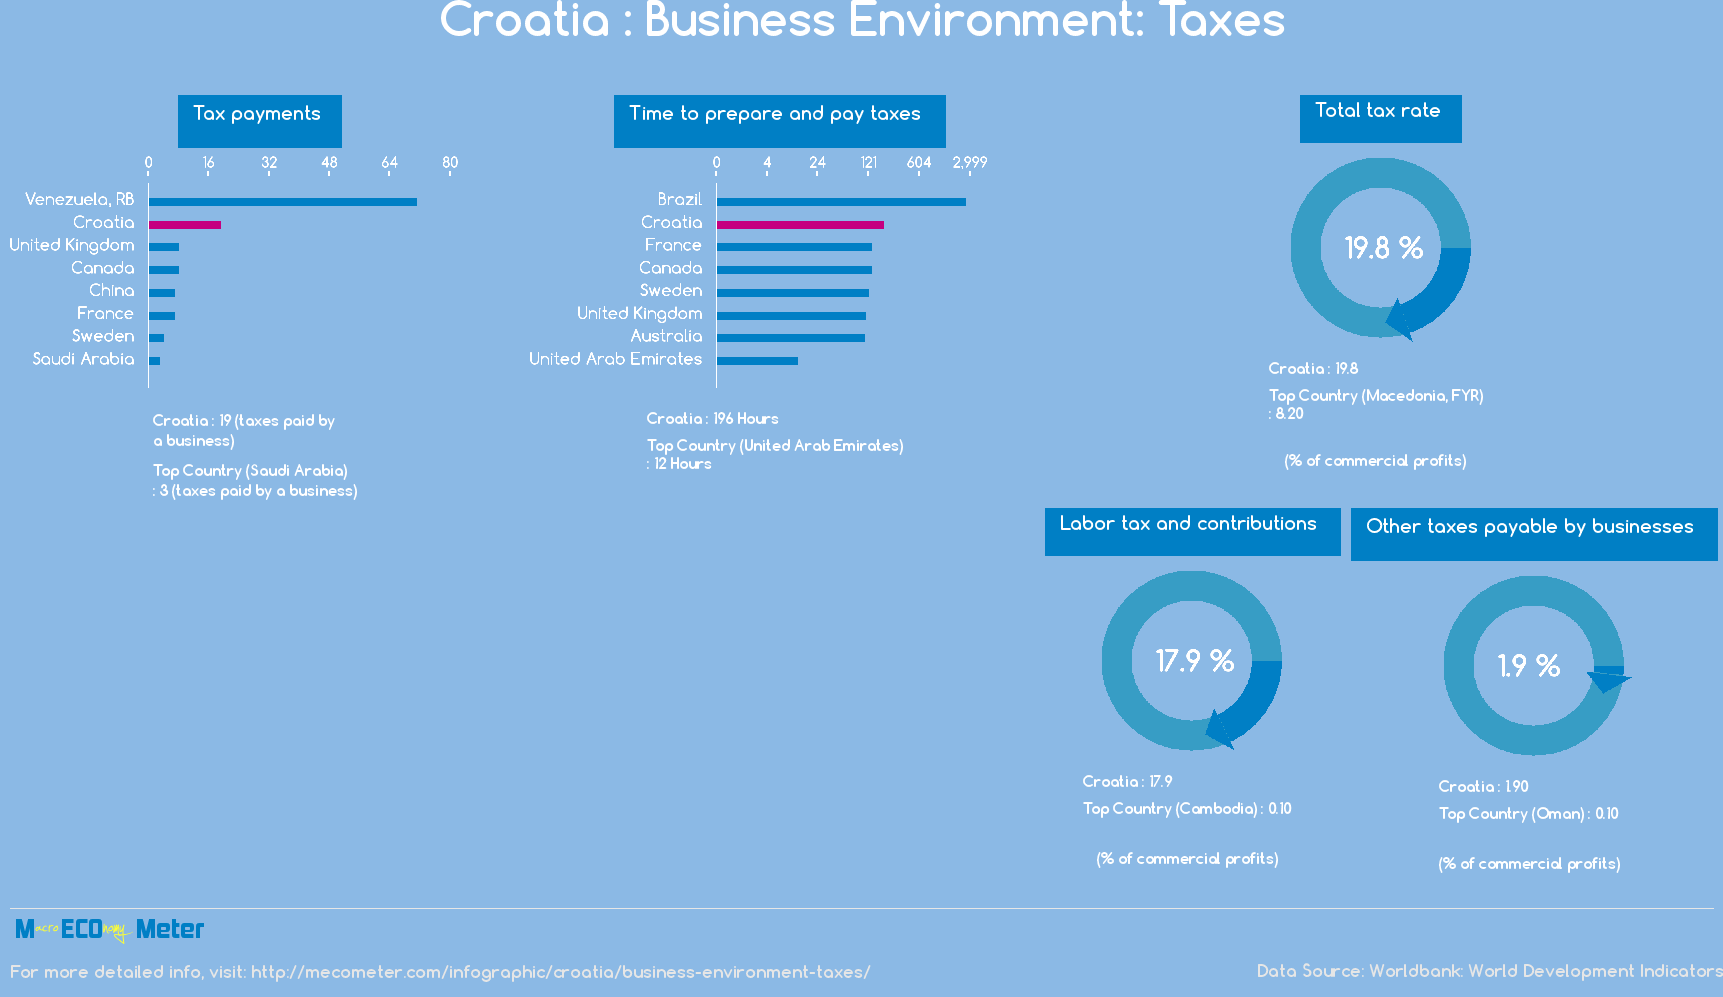 Croatia : Business Environment: Taxes